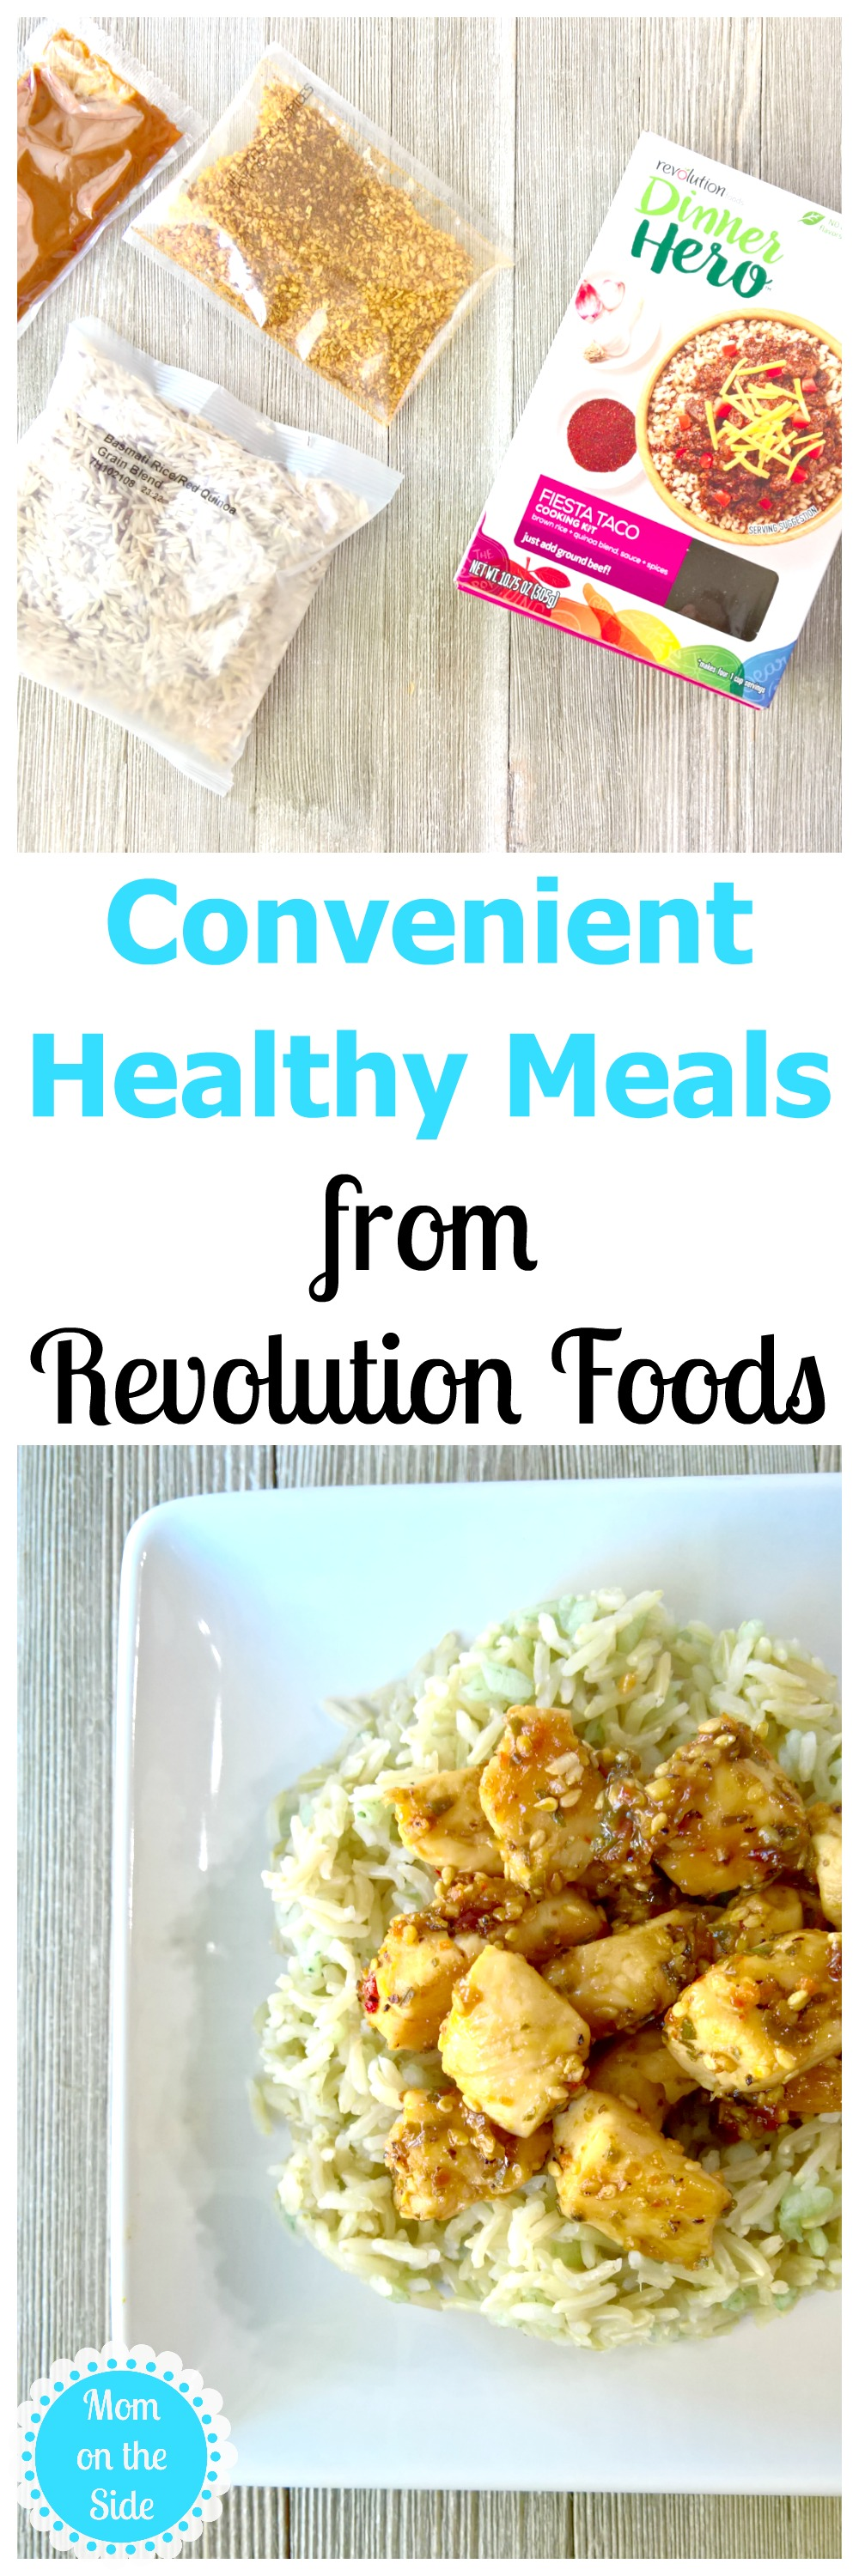 A Variety of Convenient Healthy Meals with Revolution Foods